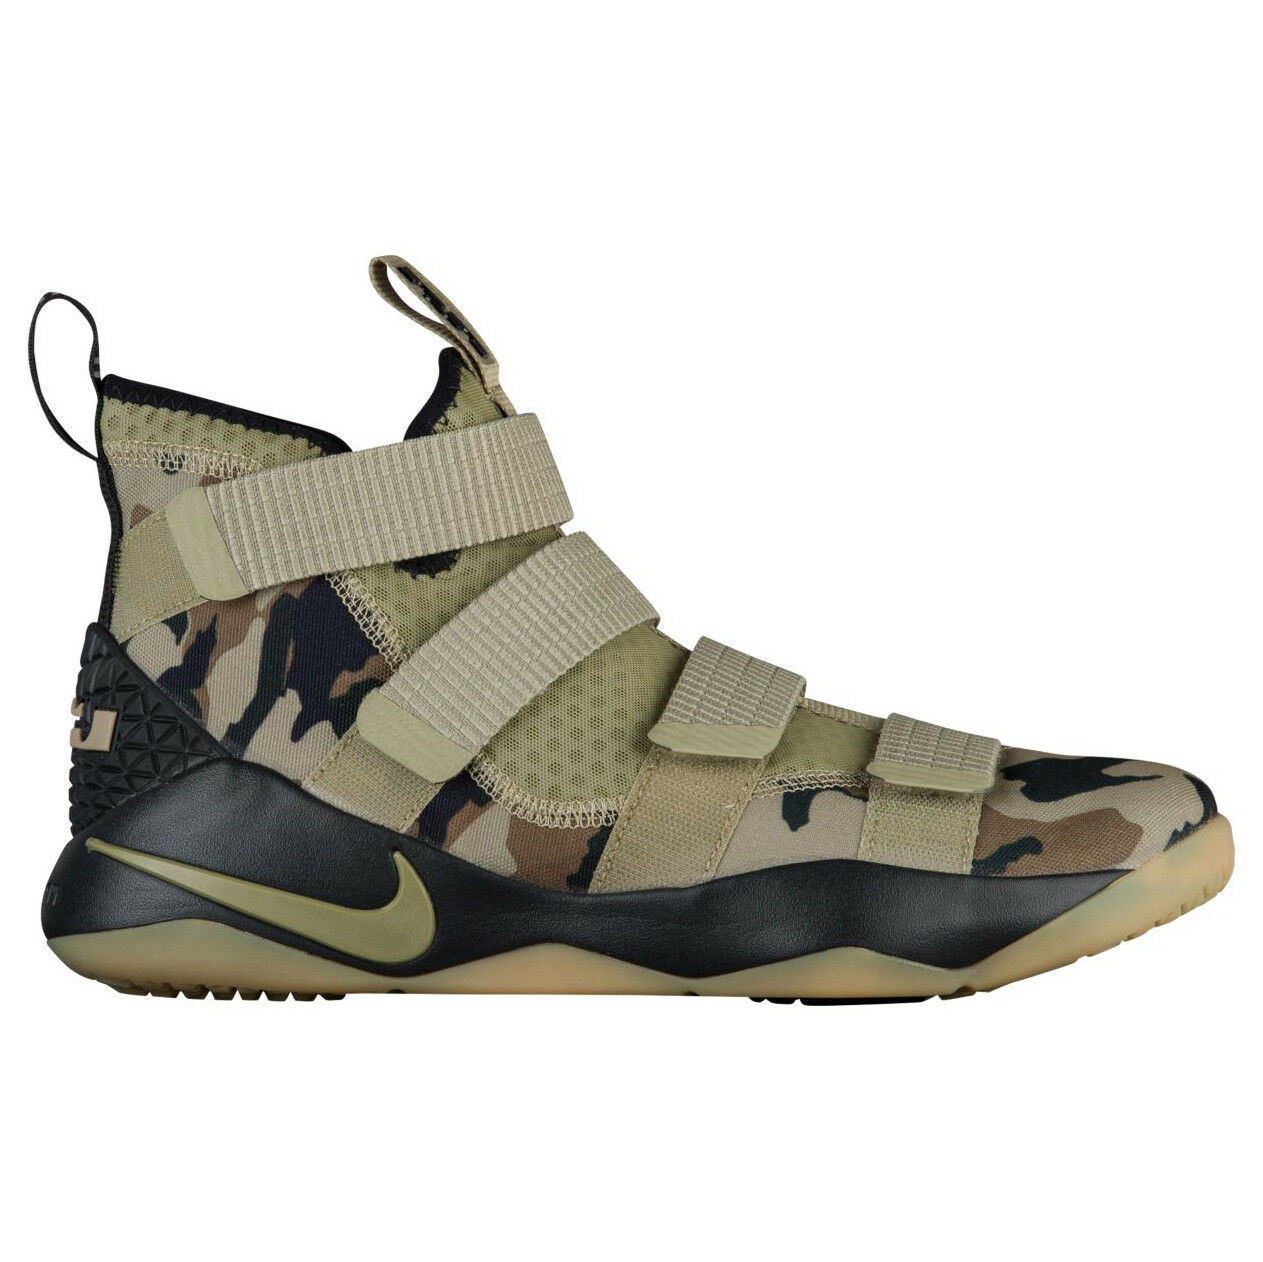 Nike Lebron Soldier XI Camo Mens 897644-200 Neutral Olive Hazel shoes Size 11